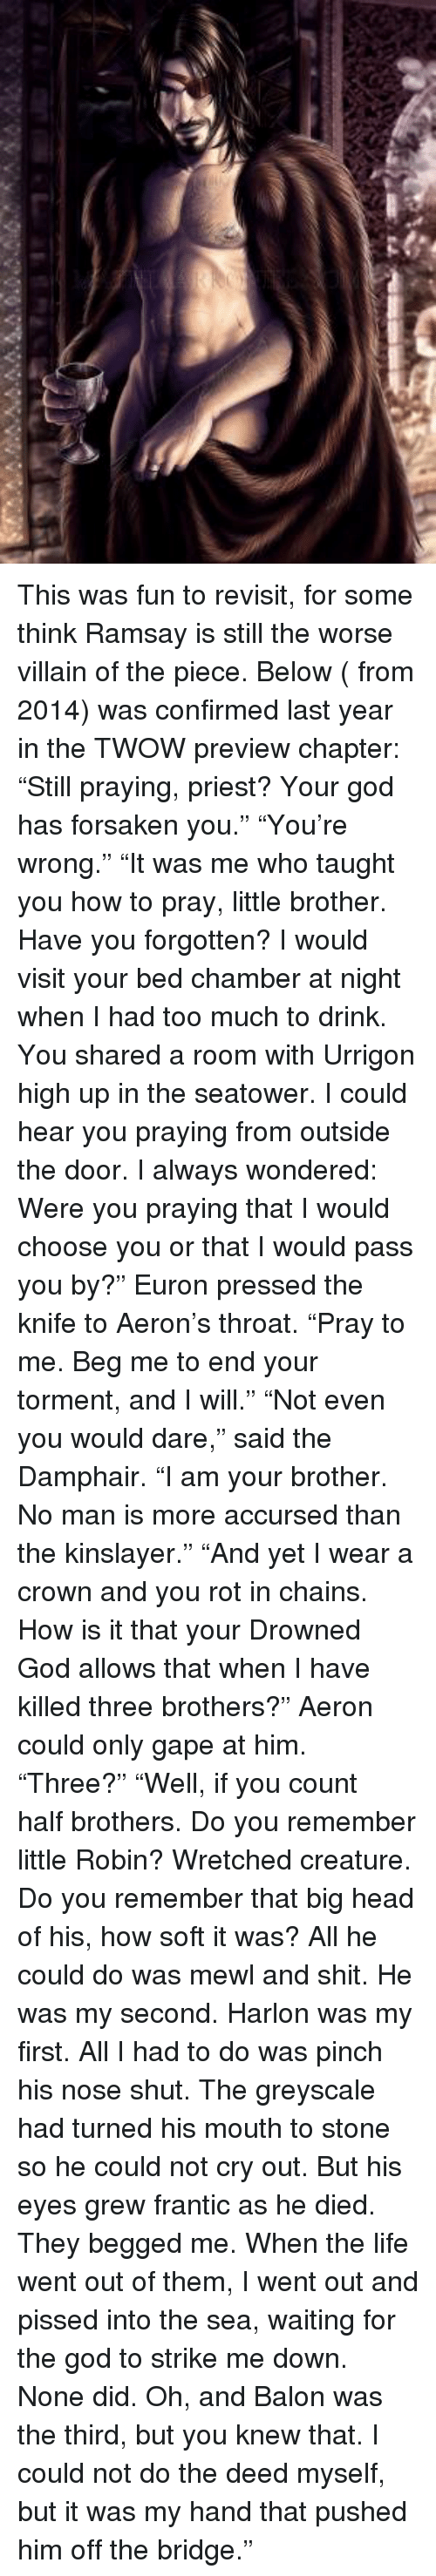 """Gaped: This was fun to revisit, for some think Ramsay is still the worse villain of the piece.   Below ( from 2014) was confirmed last year in the TWOW preview chapter:  """"Still praying, priest? Your god has forsaken you."""" """"You're wrong.""""  """"It was me who taught you how to pray, little brother. Have you forgotten? I would visit your bed chamber at night when I had too much to drink. You shared a room with Urrigon high up in the seatower. I could hear you praying from outside the door.   I always wondered: Were you praying that I would choose you or that I would pass you by?"""" Euron pressed the knife to Aeron's throat.   """"Pray to me. Beg me to end your torment, and I will."""" """"Not even you would dare,"""" said the Damphair. """"I am your brother. No man is more accursed than the kinslayer.""""  """"And yet I wear a crown and you rot in chains. How is it that your Drowned God allows that when I have killed three brothers?""""   Aeron could only gape at him. """"Three?""""  """"Well, if you count half brothers. Do you remember little Robin? Wretched creature. Do you remember that big head of his, how soft it was? All he could do was mewl and shit.   He was my second. Harlon was my first. All I had to do was pinch his nose shut. The greyscale had turned his mouth to stone so he could not cry out.   But his eyes grew frantic as he died. They begged me. When the life went out of them, I went out and pissed into the sea, waiting for the god to strike me down. None did. Oh, and Balon was the third, but you knew that. I could not do the deed myself, but it was my hand that pushed him off the bridge."""""""